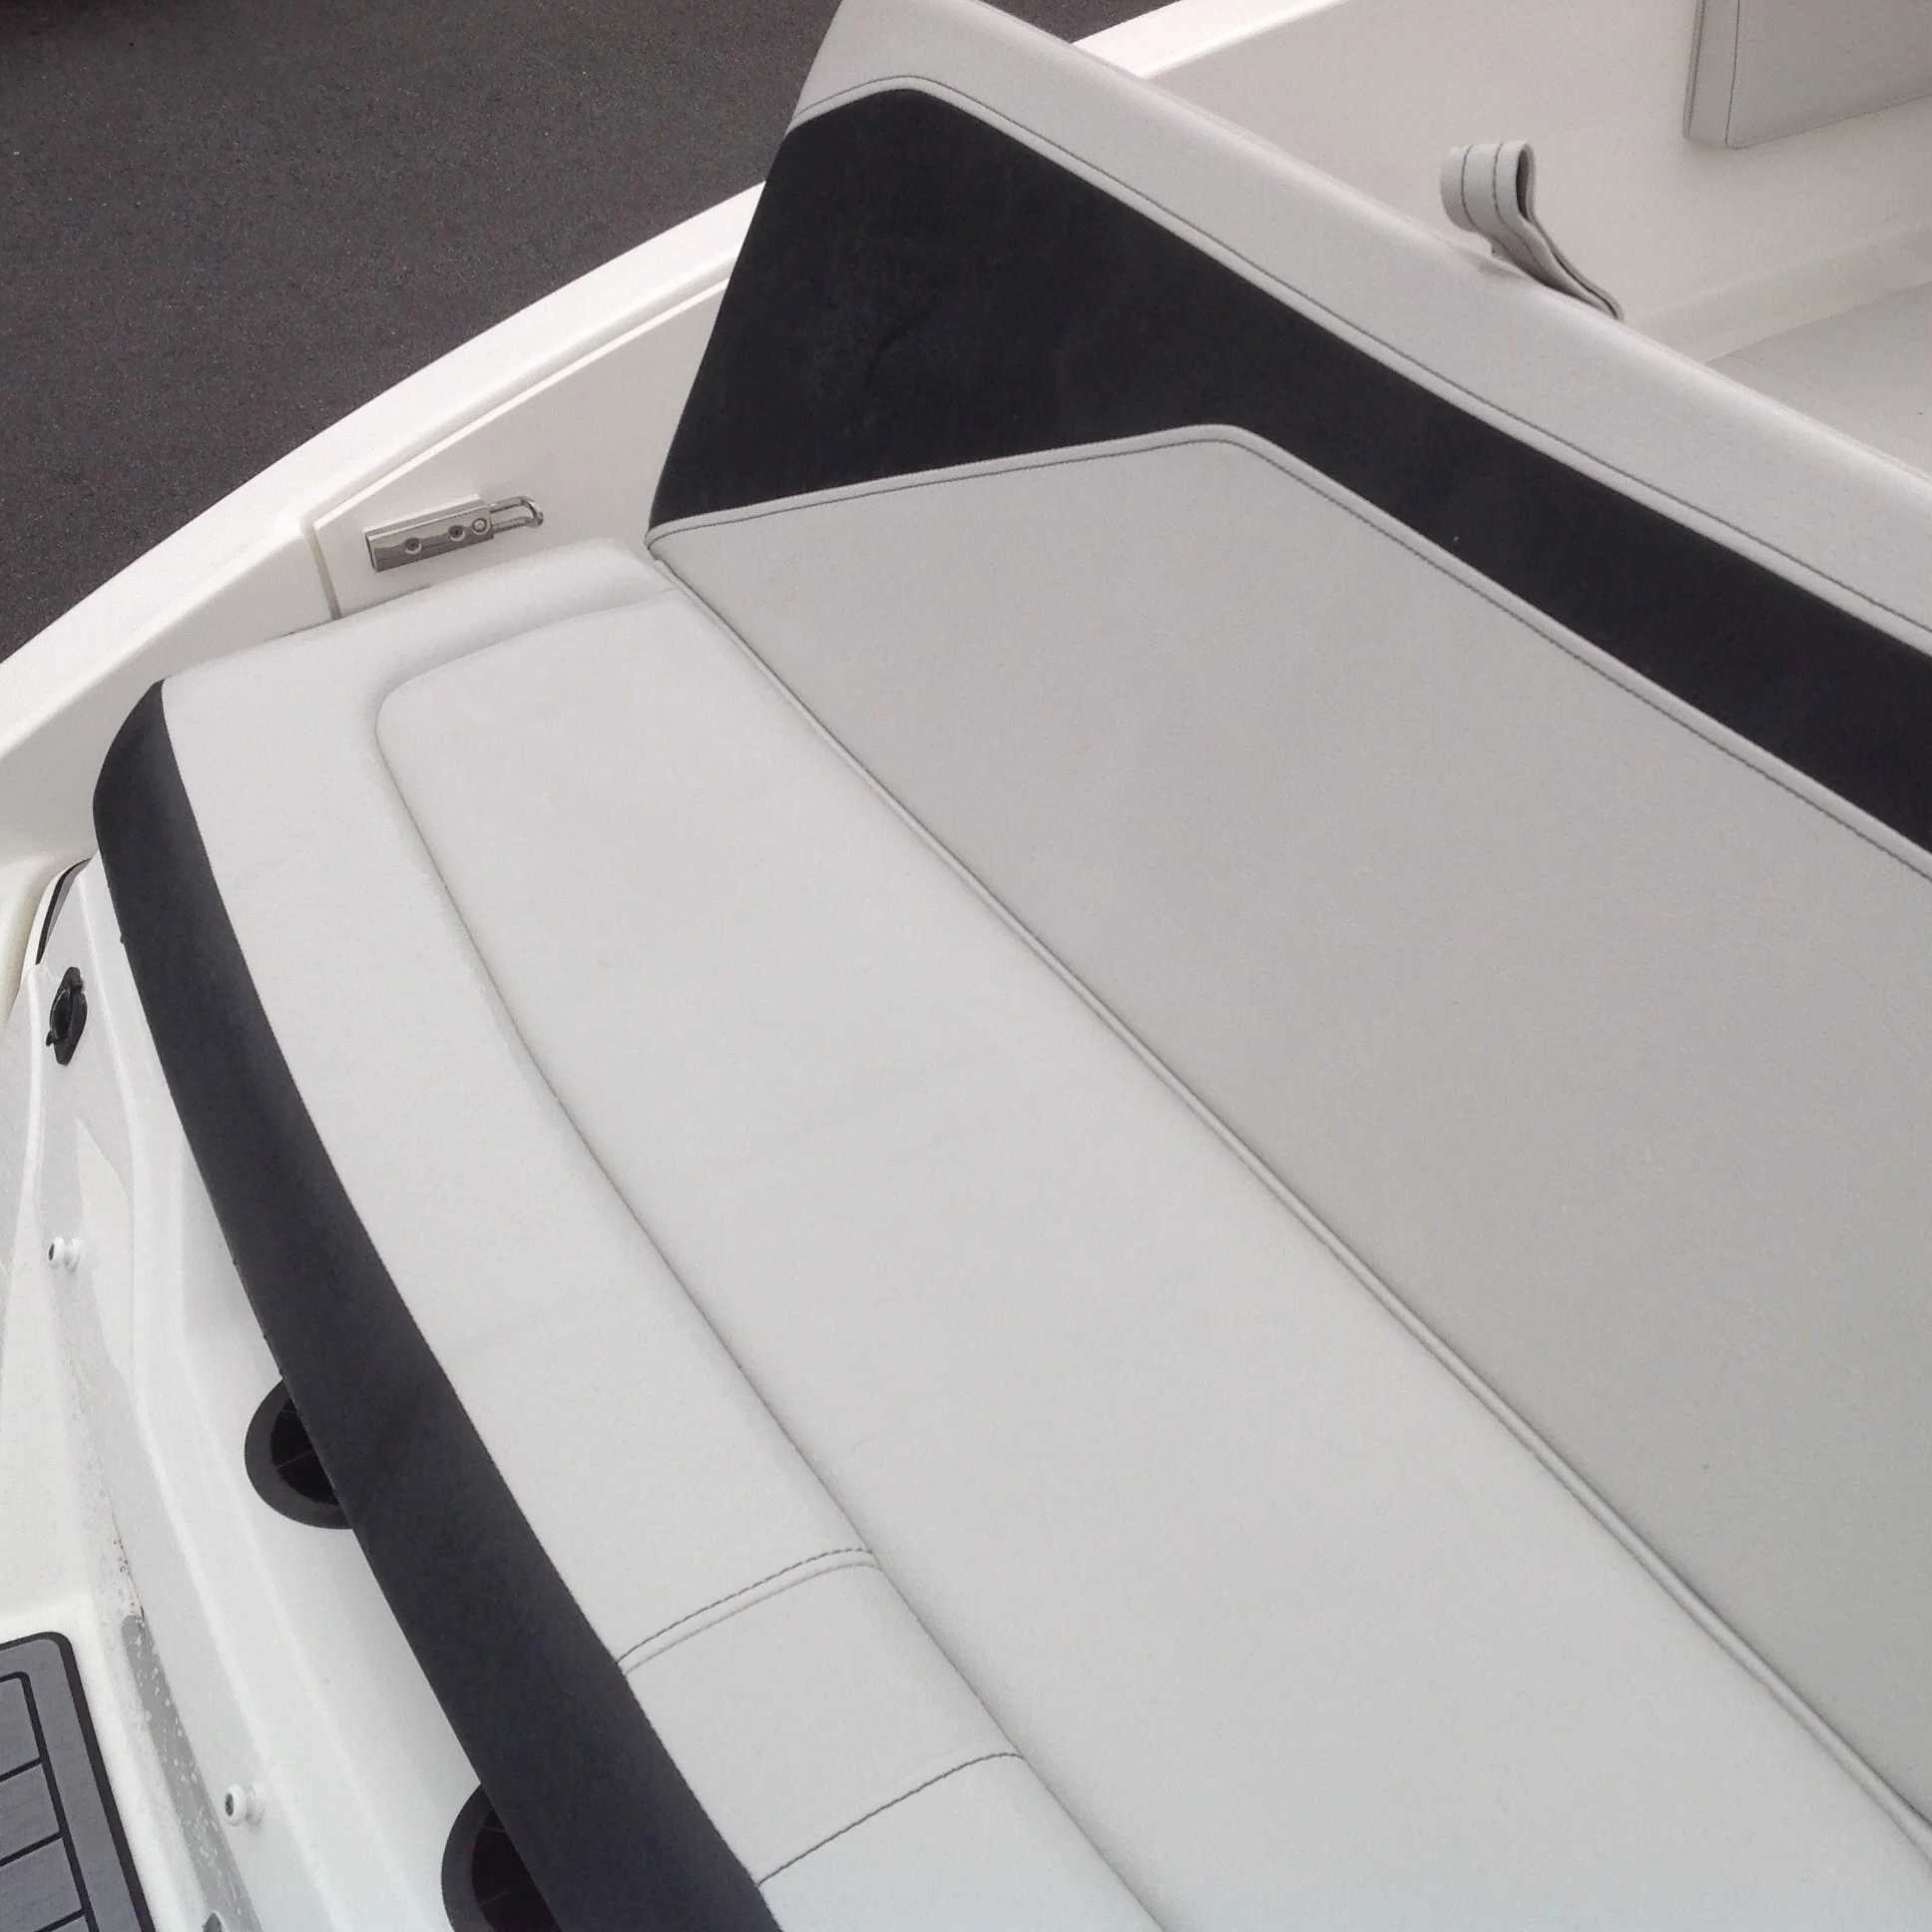 2022 Sea Ray boat for sale, model of the boat is 210spx & Image # 7 of 8